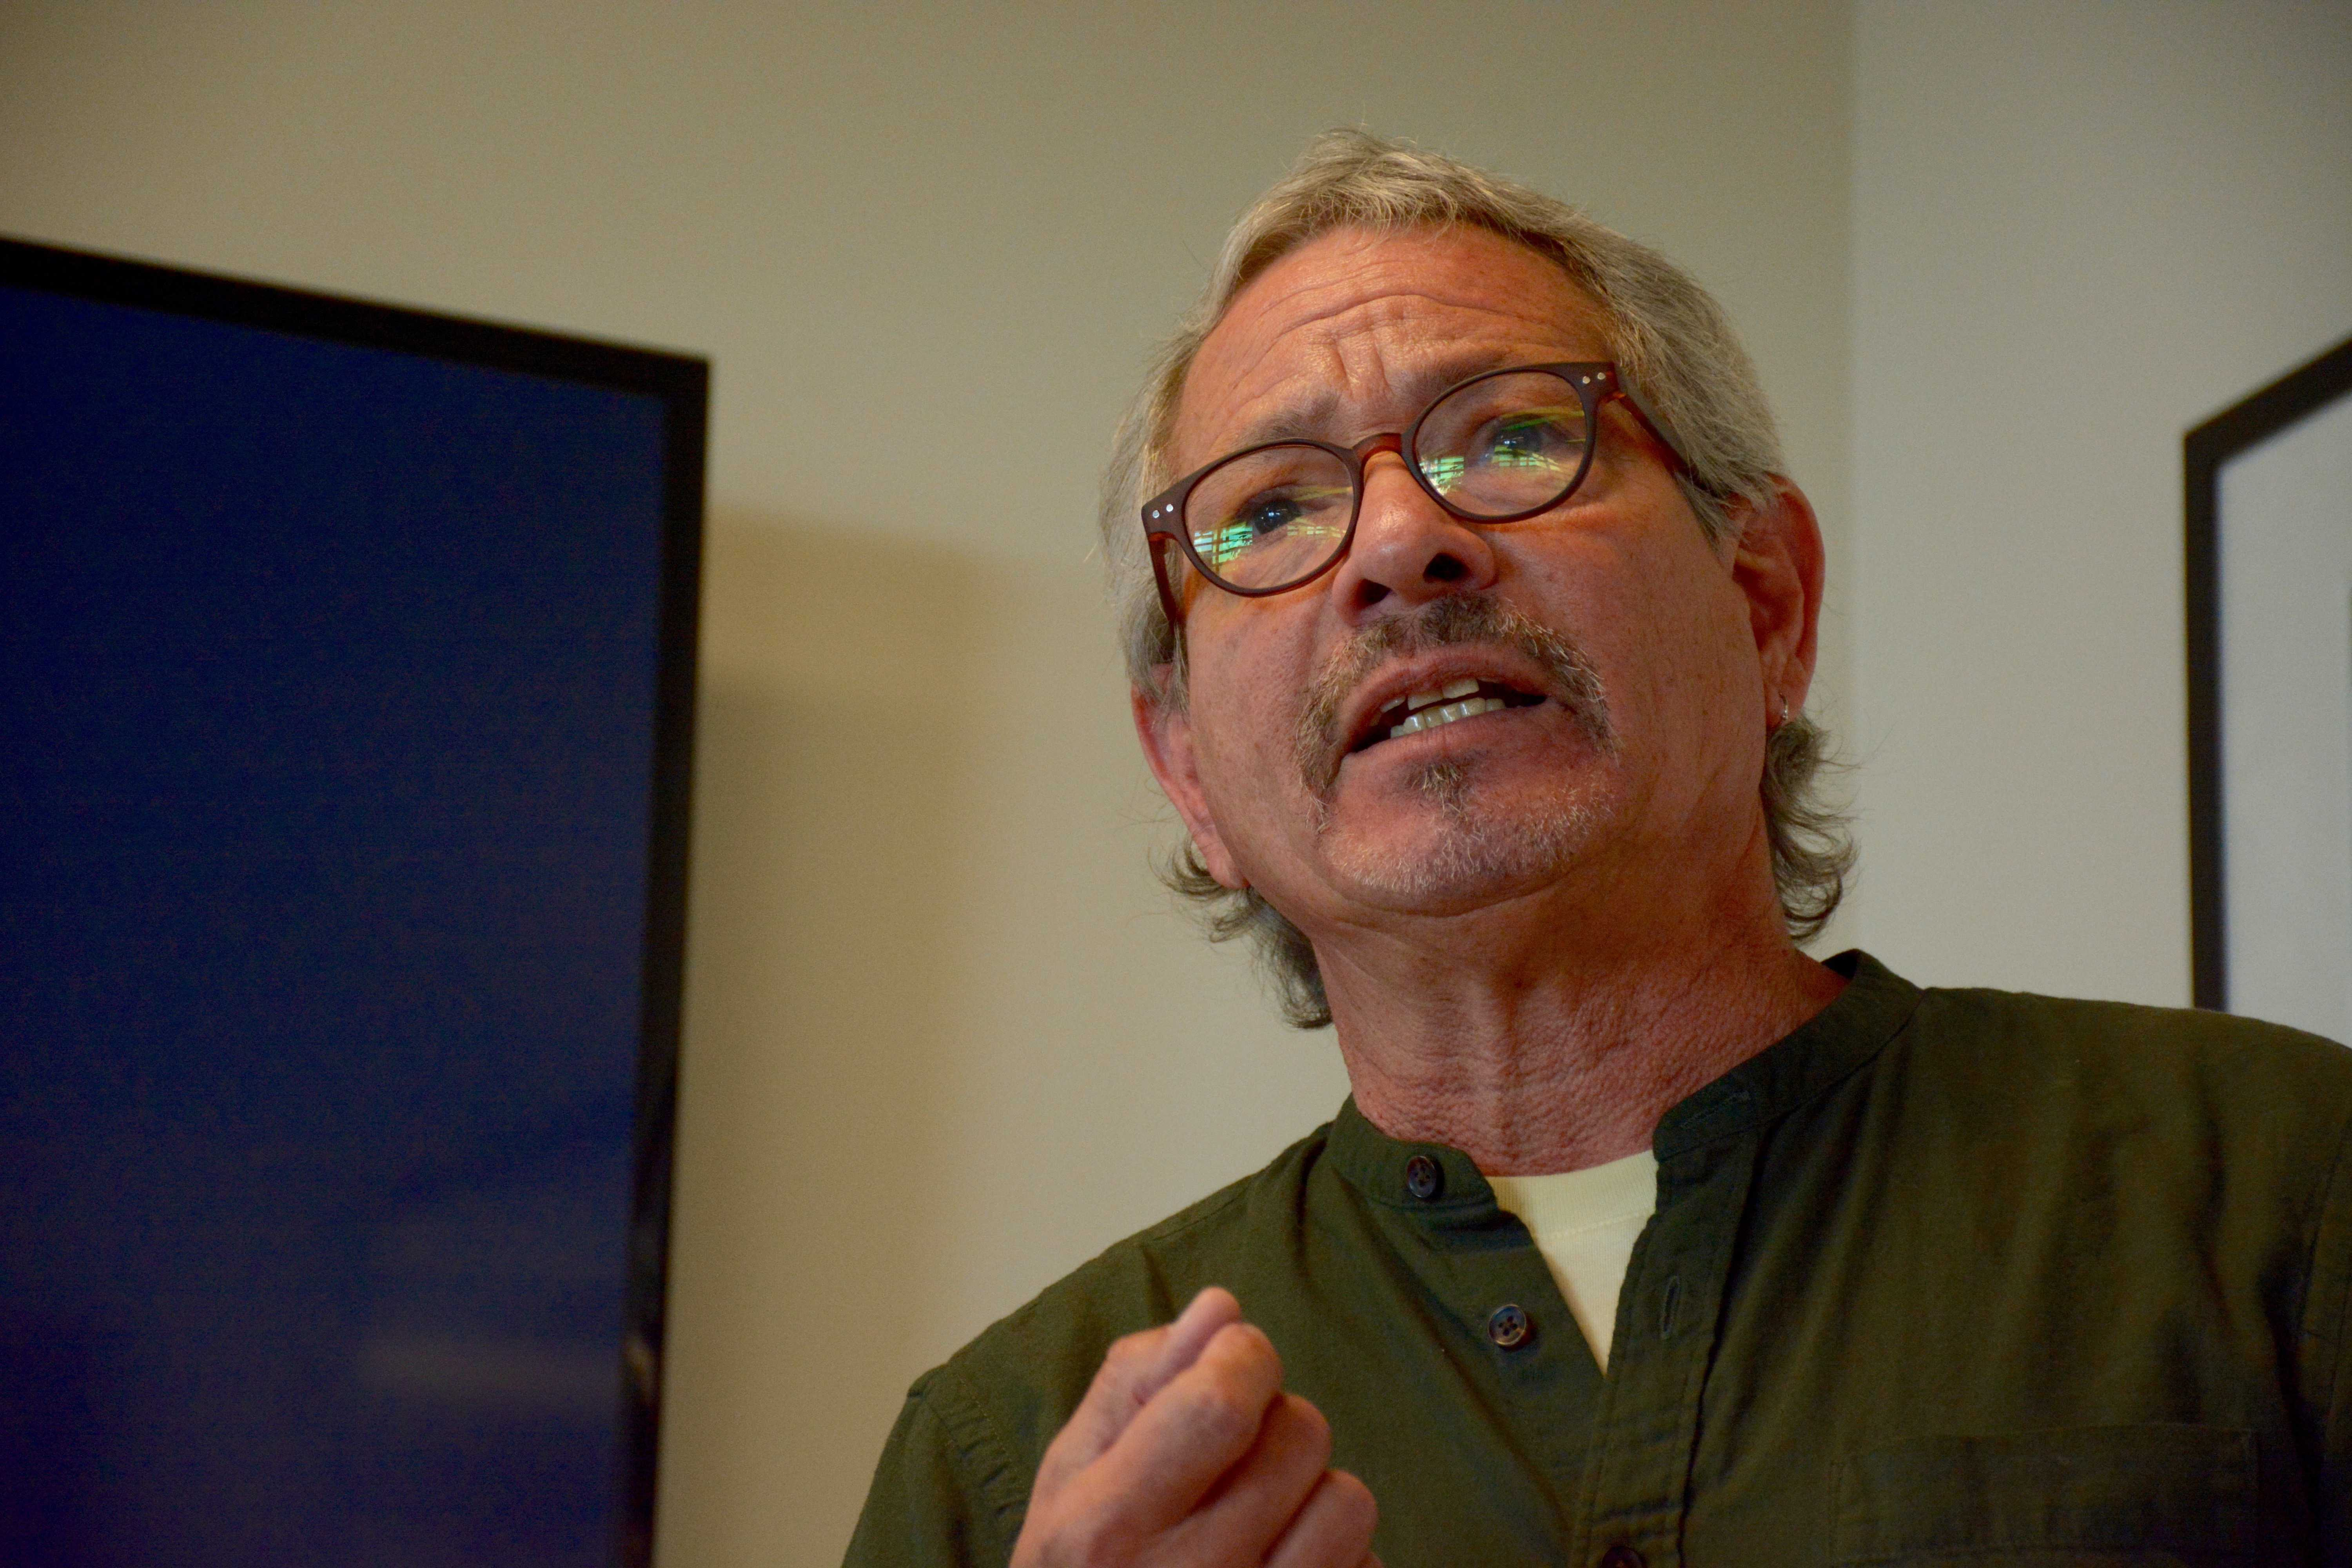 Anthropology Professor James Quesada speaks about Nicaragua's history of conflict, violence, and instability at SF State on Wednesday, October 17. (Tristen Rowean/Golden Gate Xpress)